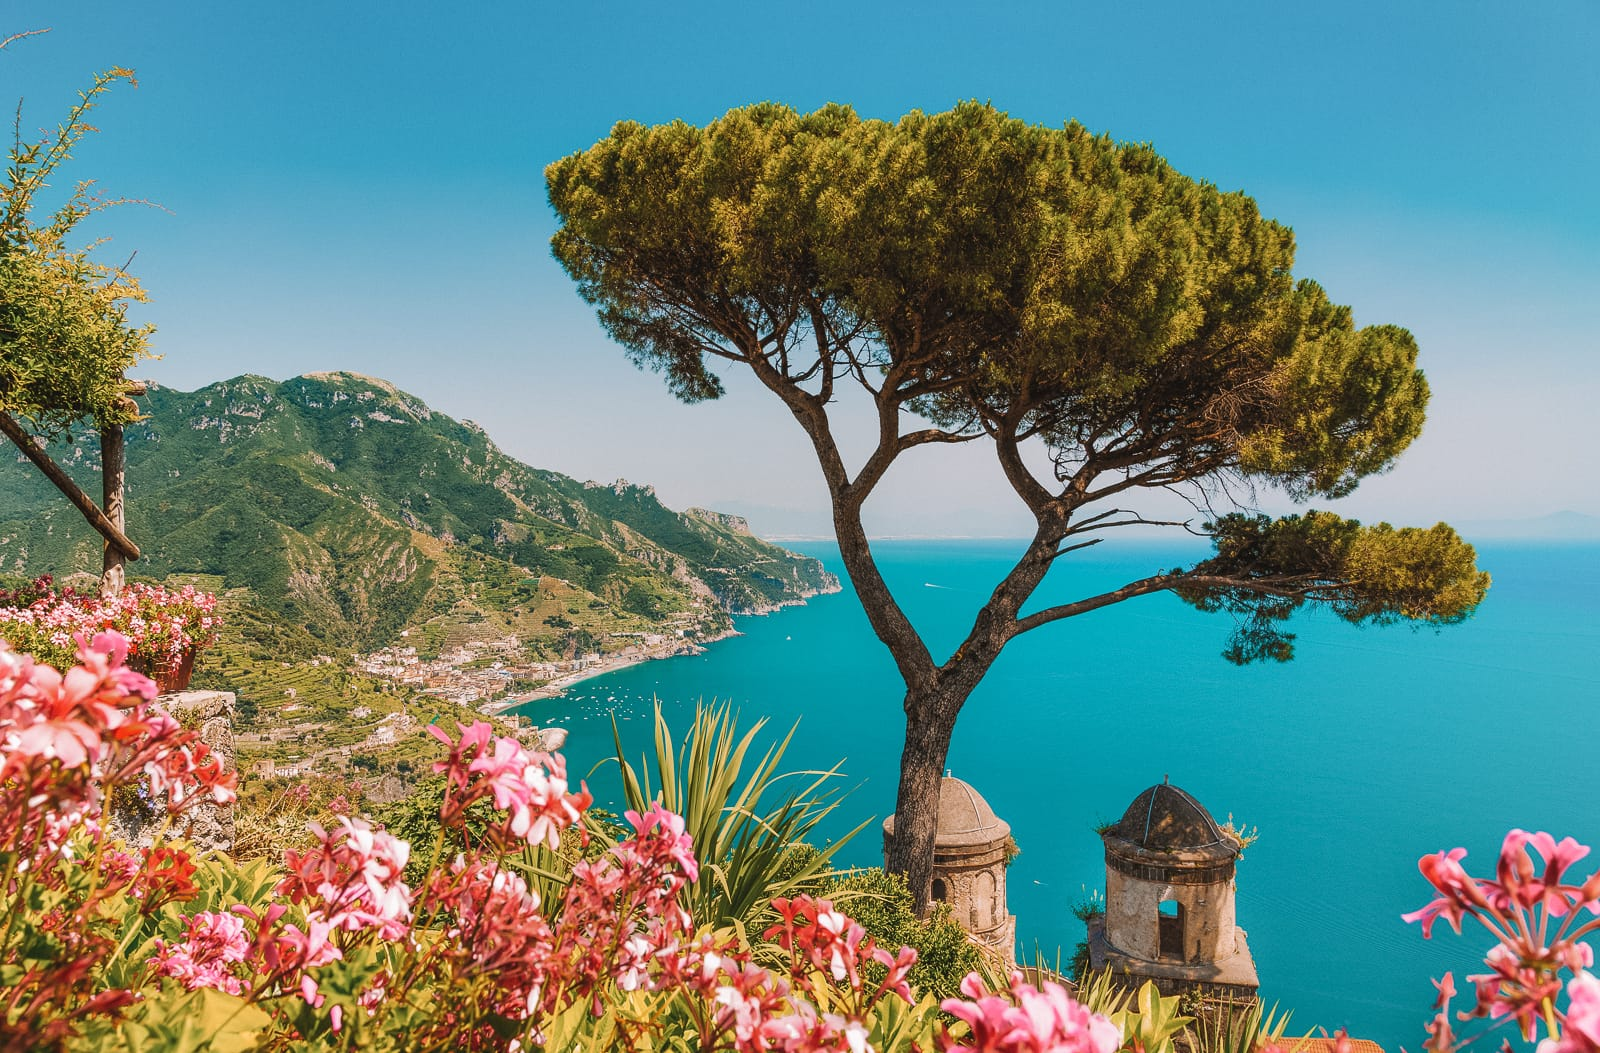 12 Beautiful Places In The Amalfi Coast Of Italy That You Have To Visit (5)